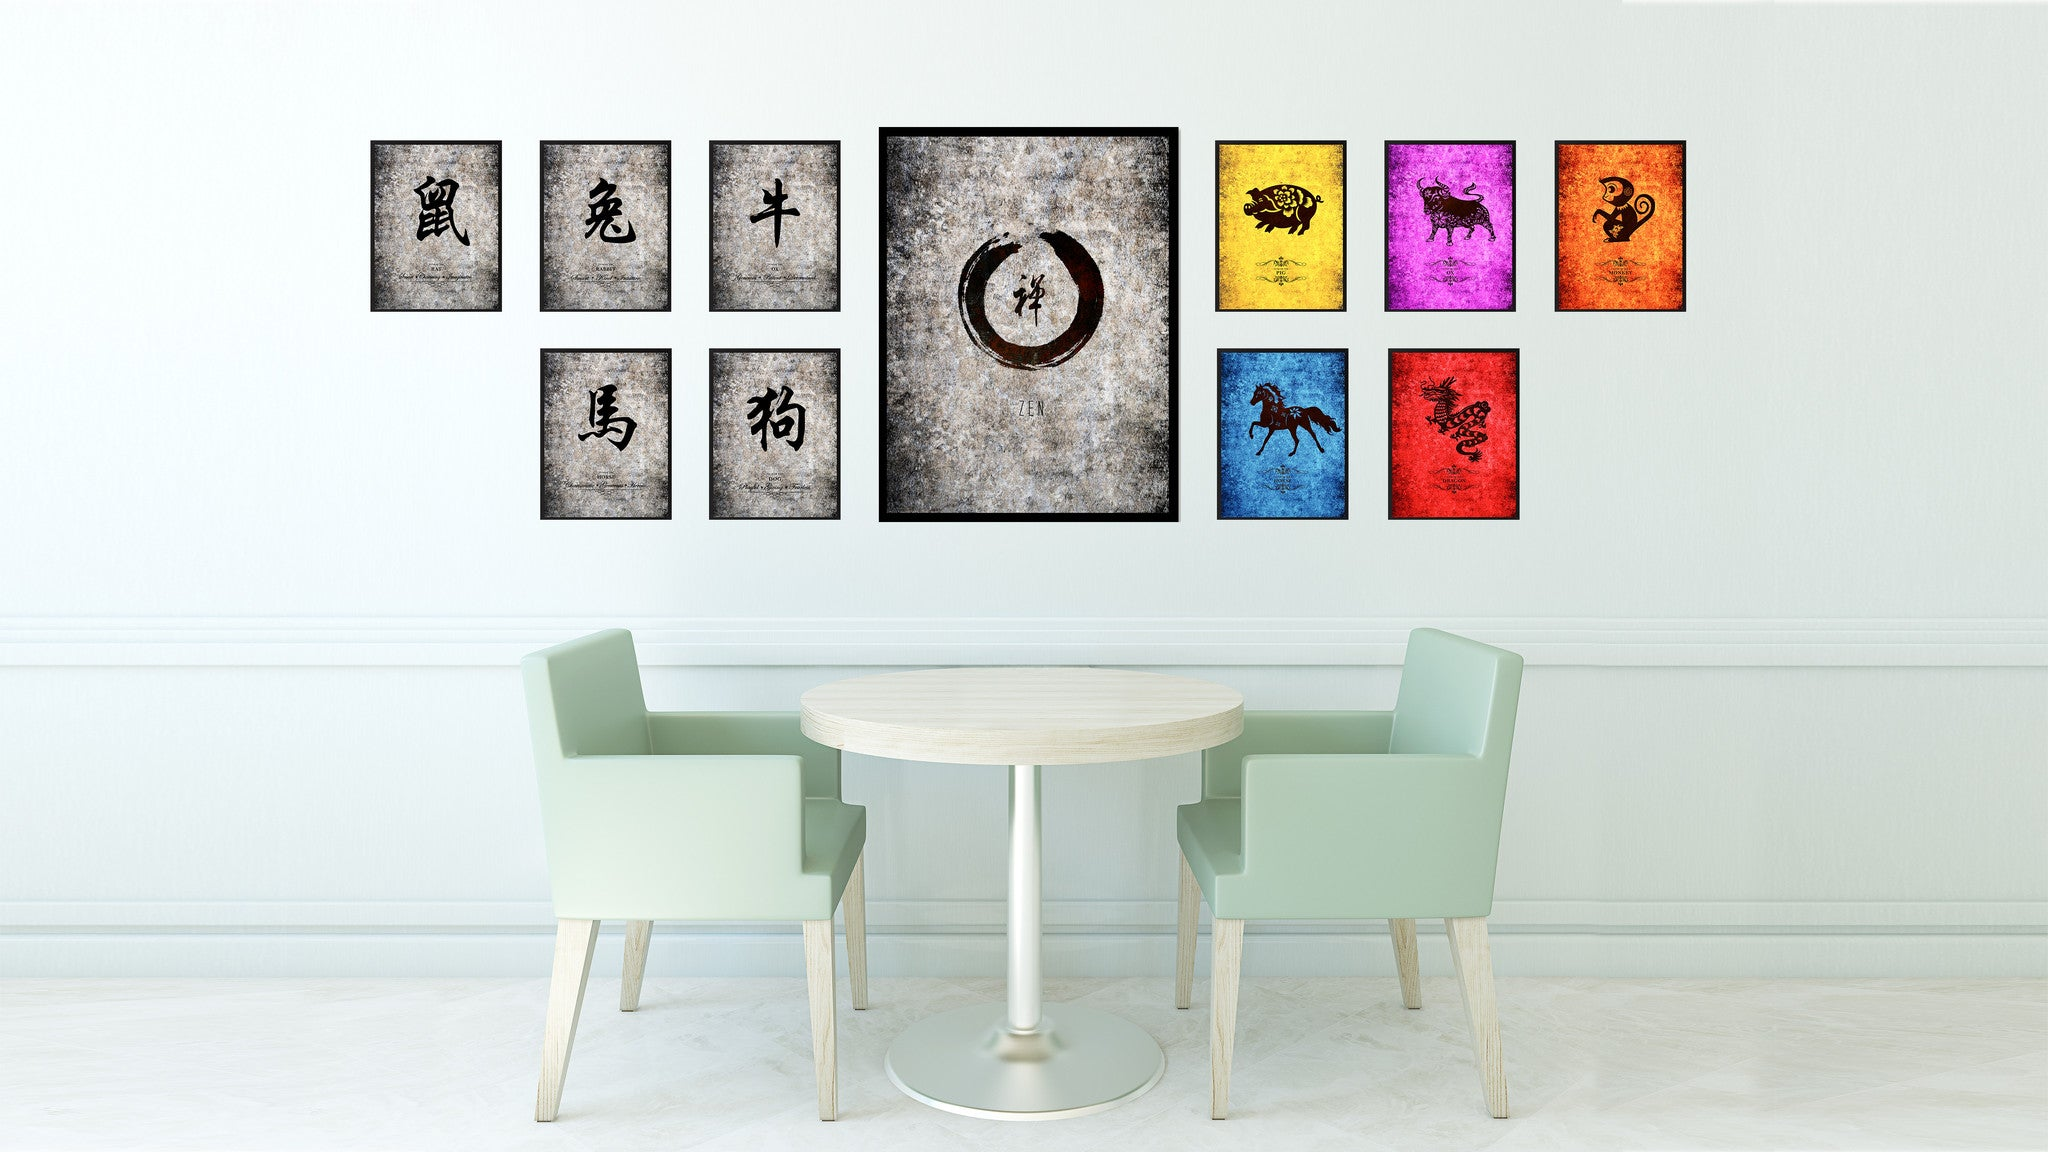 Zen Horoscope Astrology Canvas Print Picture Frame Home Decor Wall Art Gift